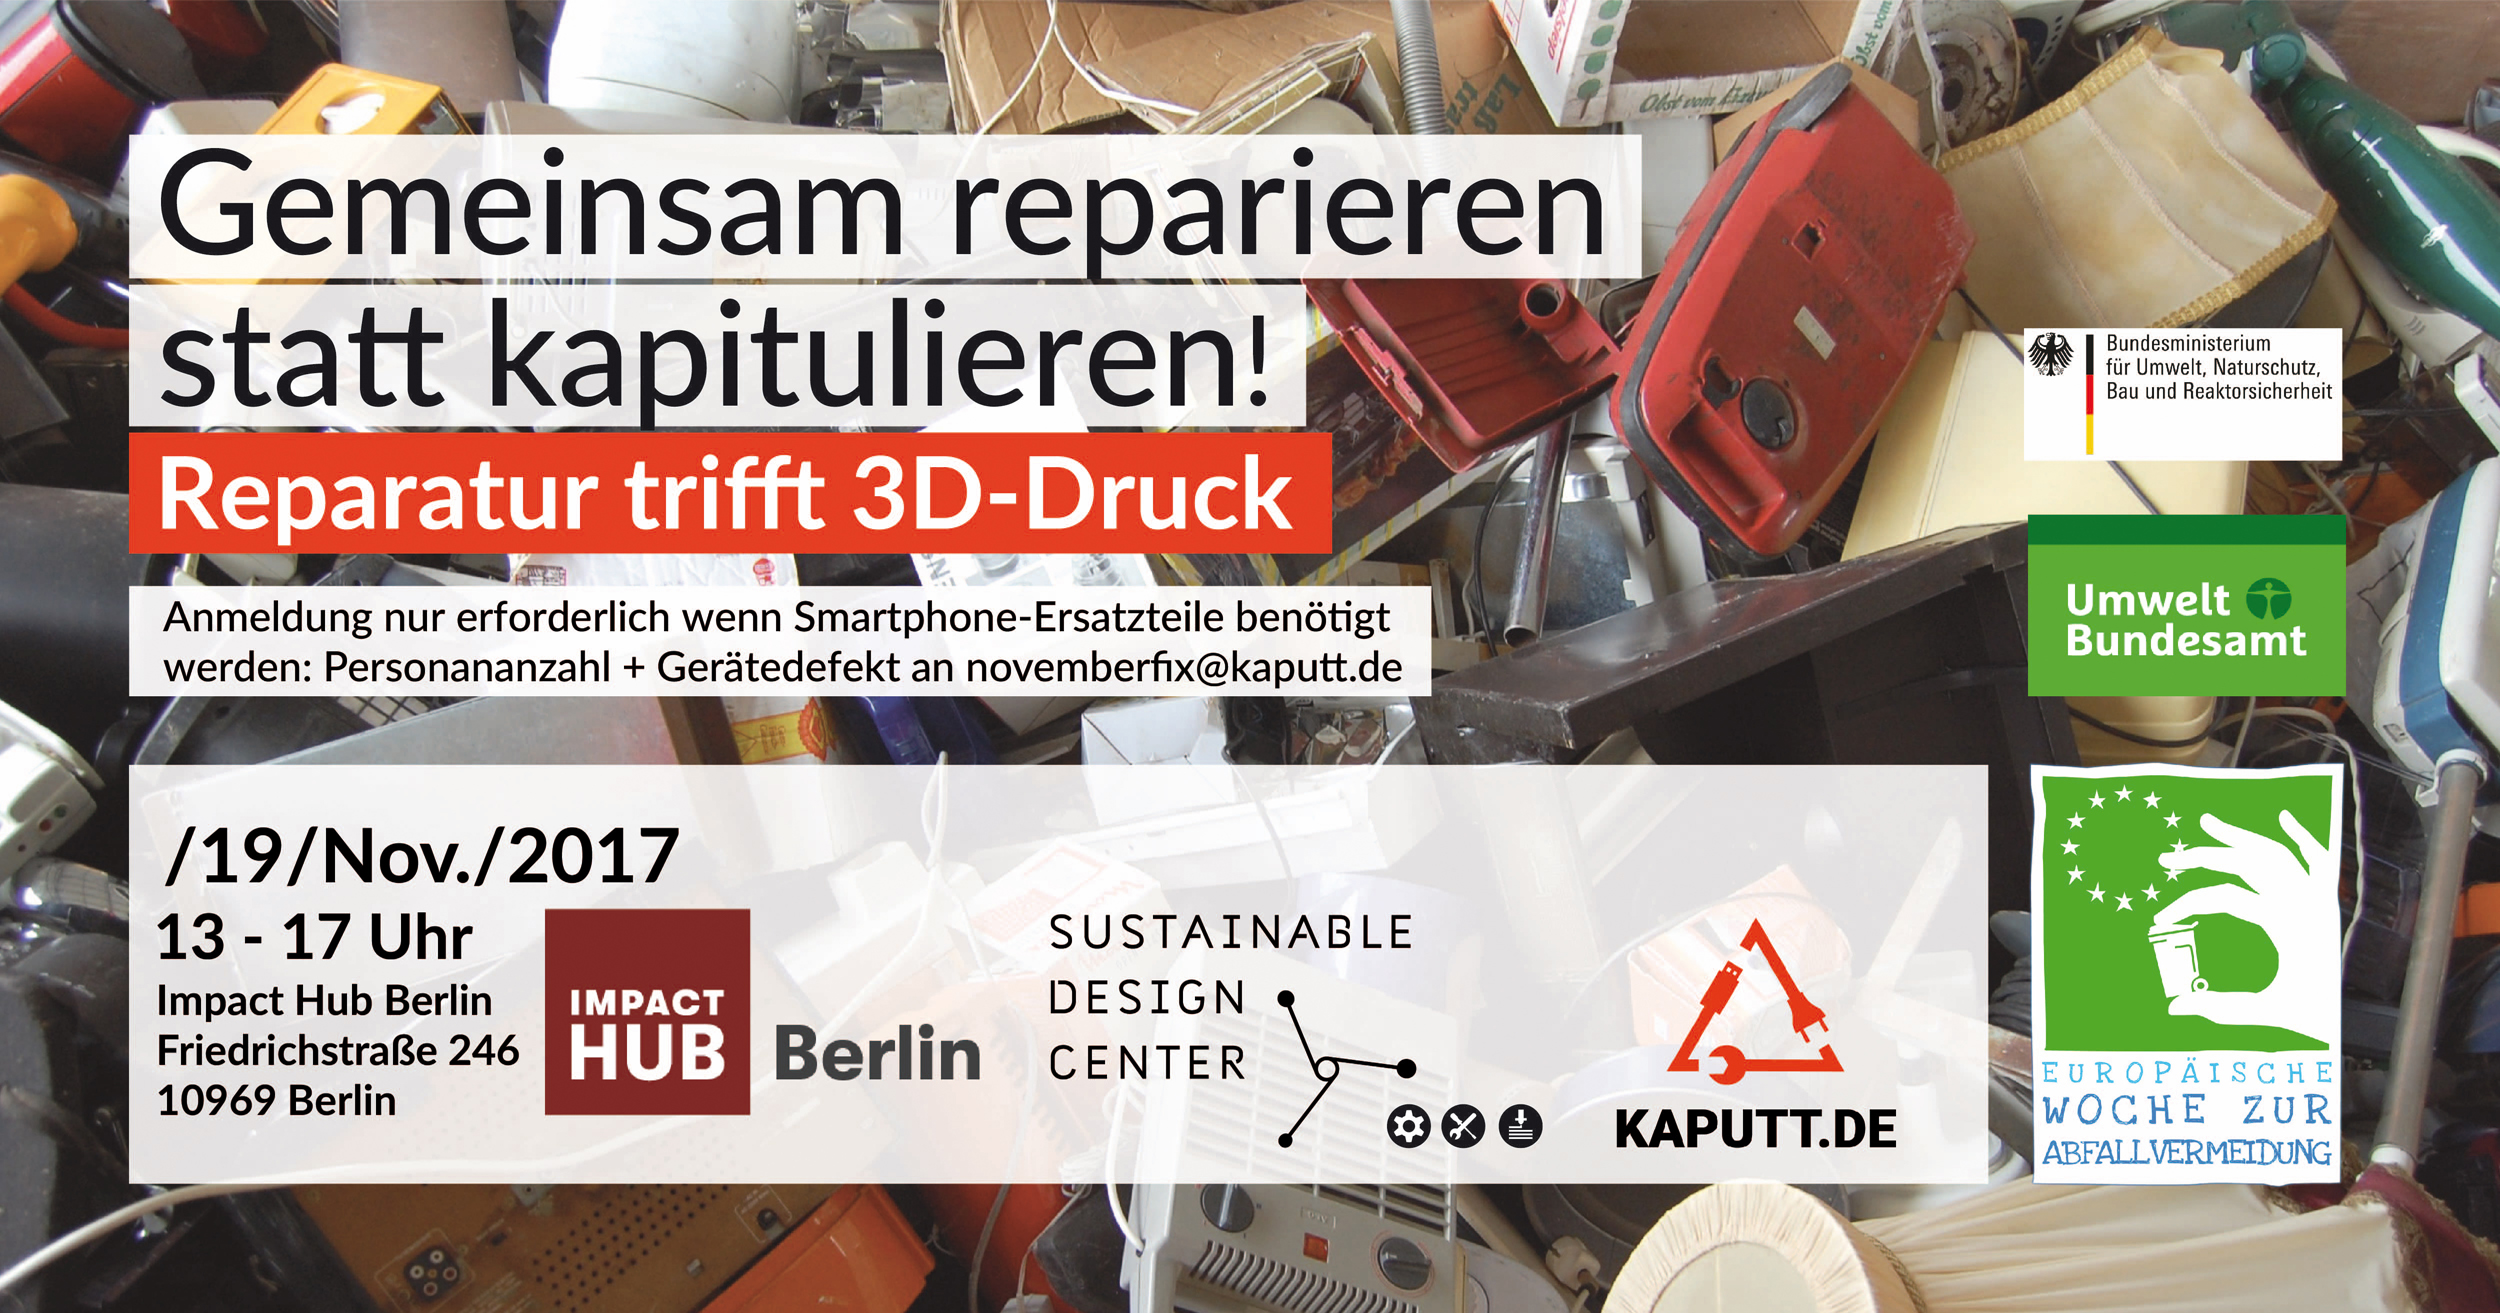 gemeinsam reparieren statt kapitulieren reparatur trifft 3d druck sdc blog. Black Bedroom Furniture Sets. Home Design Ideas